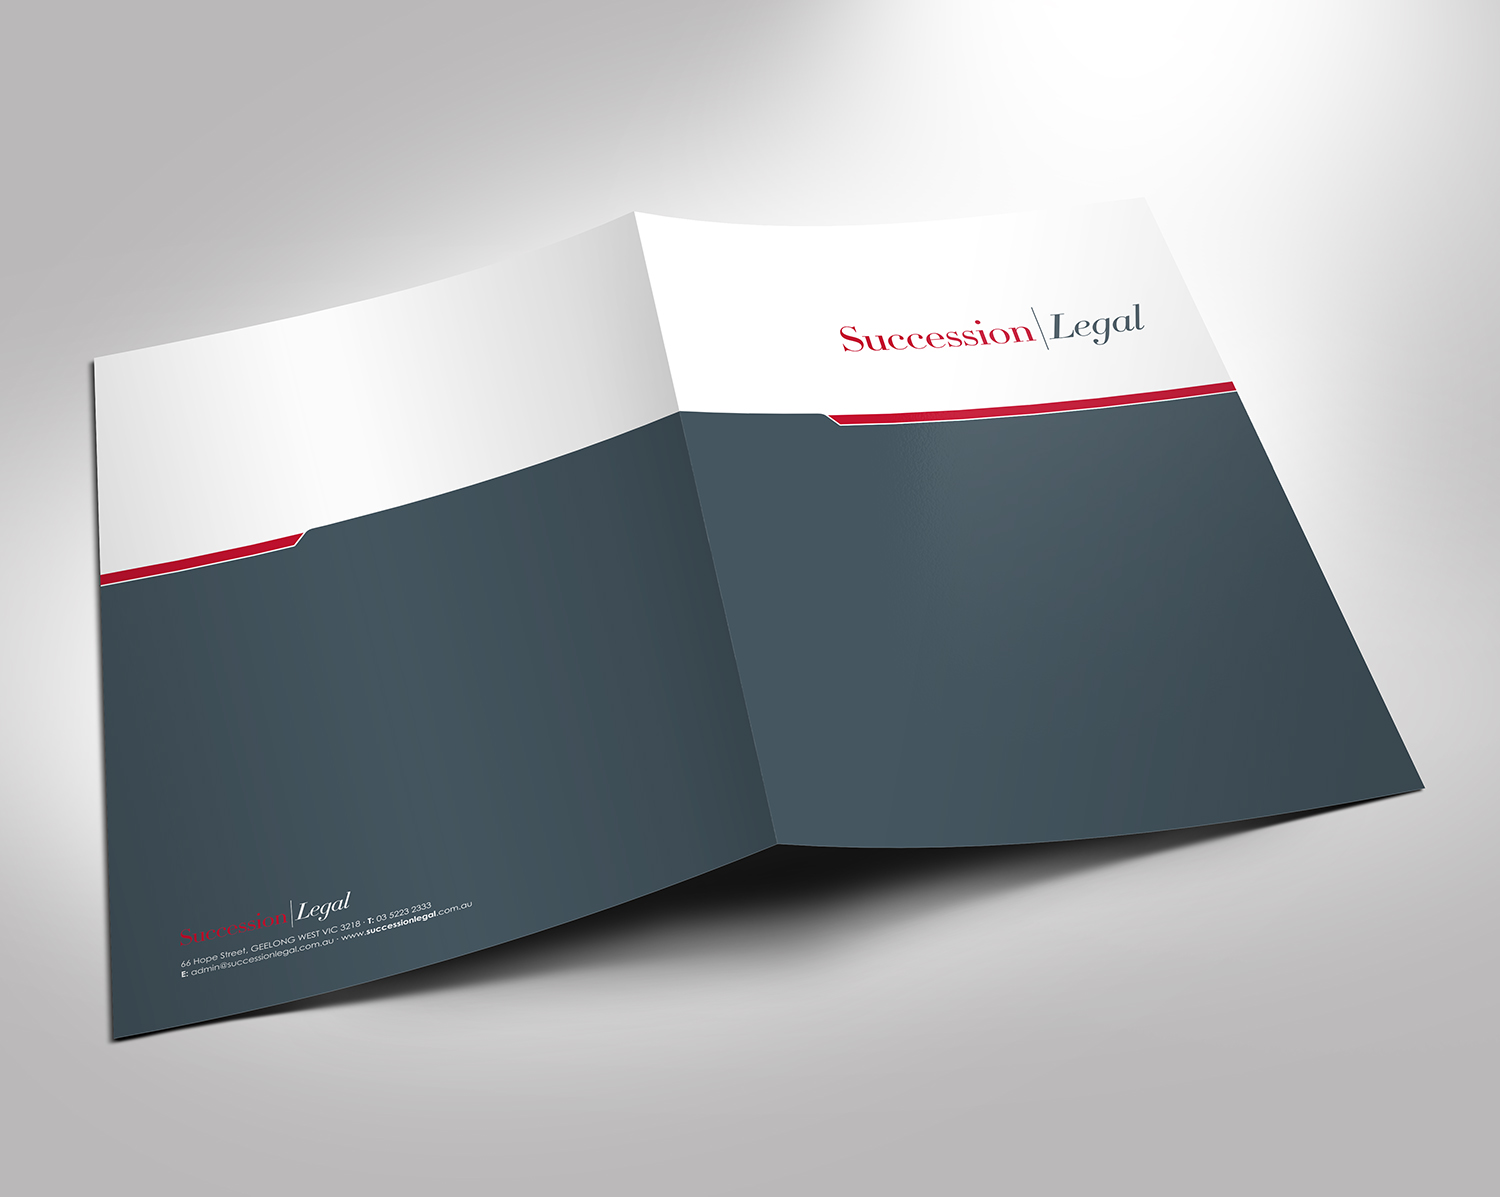 Elegant, Upmarket, Law Firm Stationery Design for a Company by